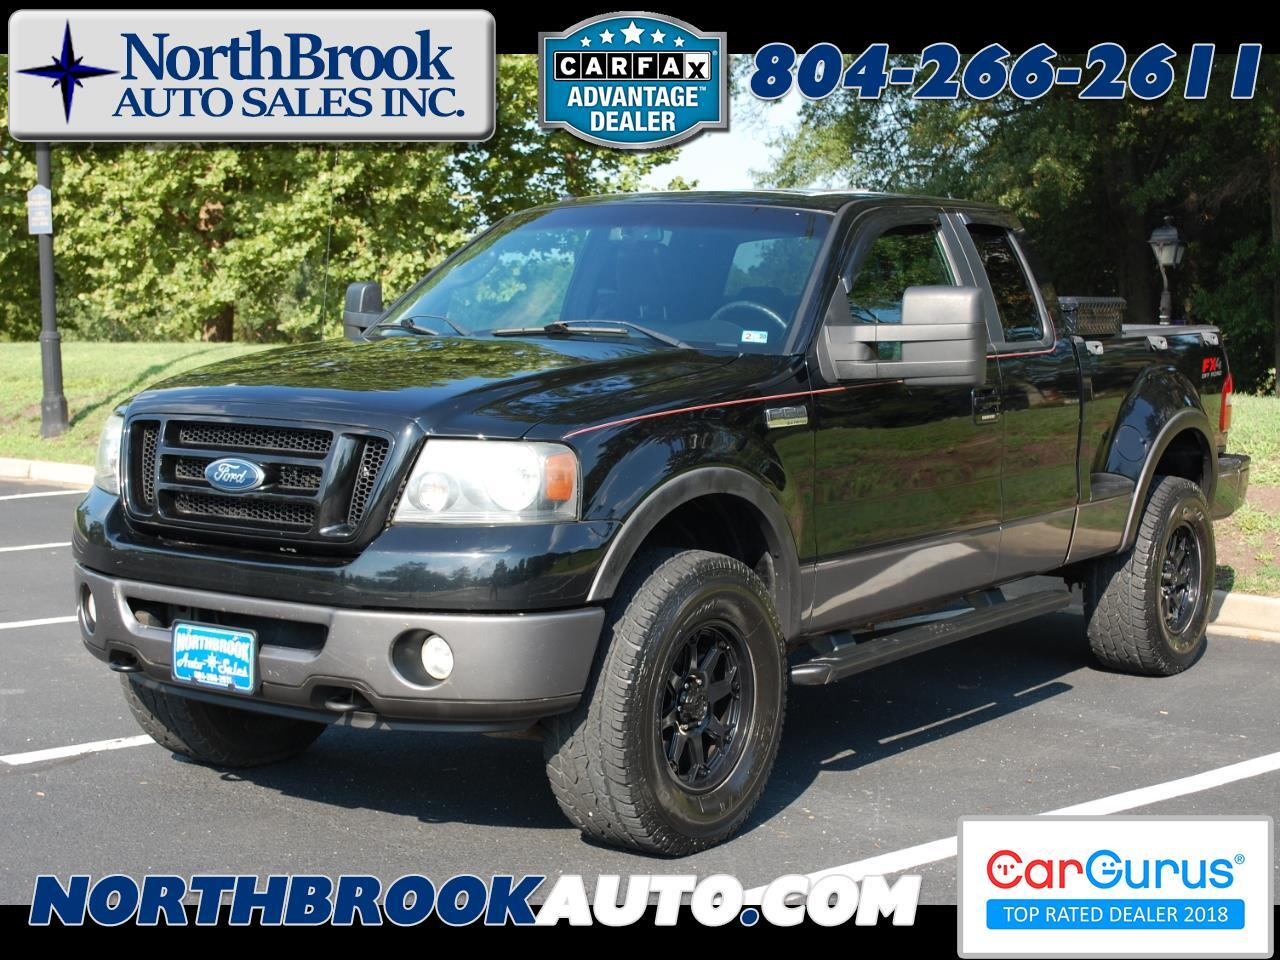 "2007 Ford F-150 4WD Supercab Flareside 145"" FX4"